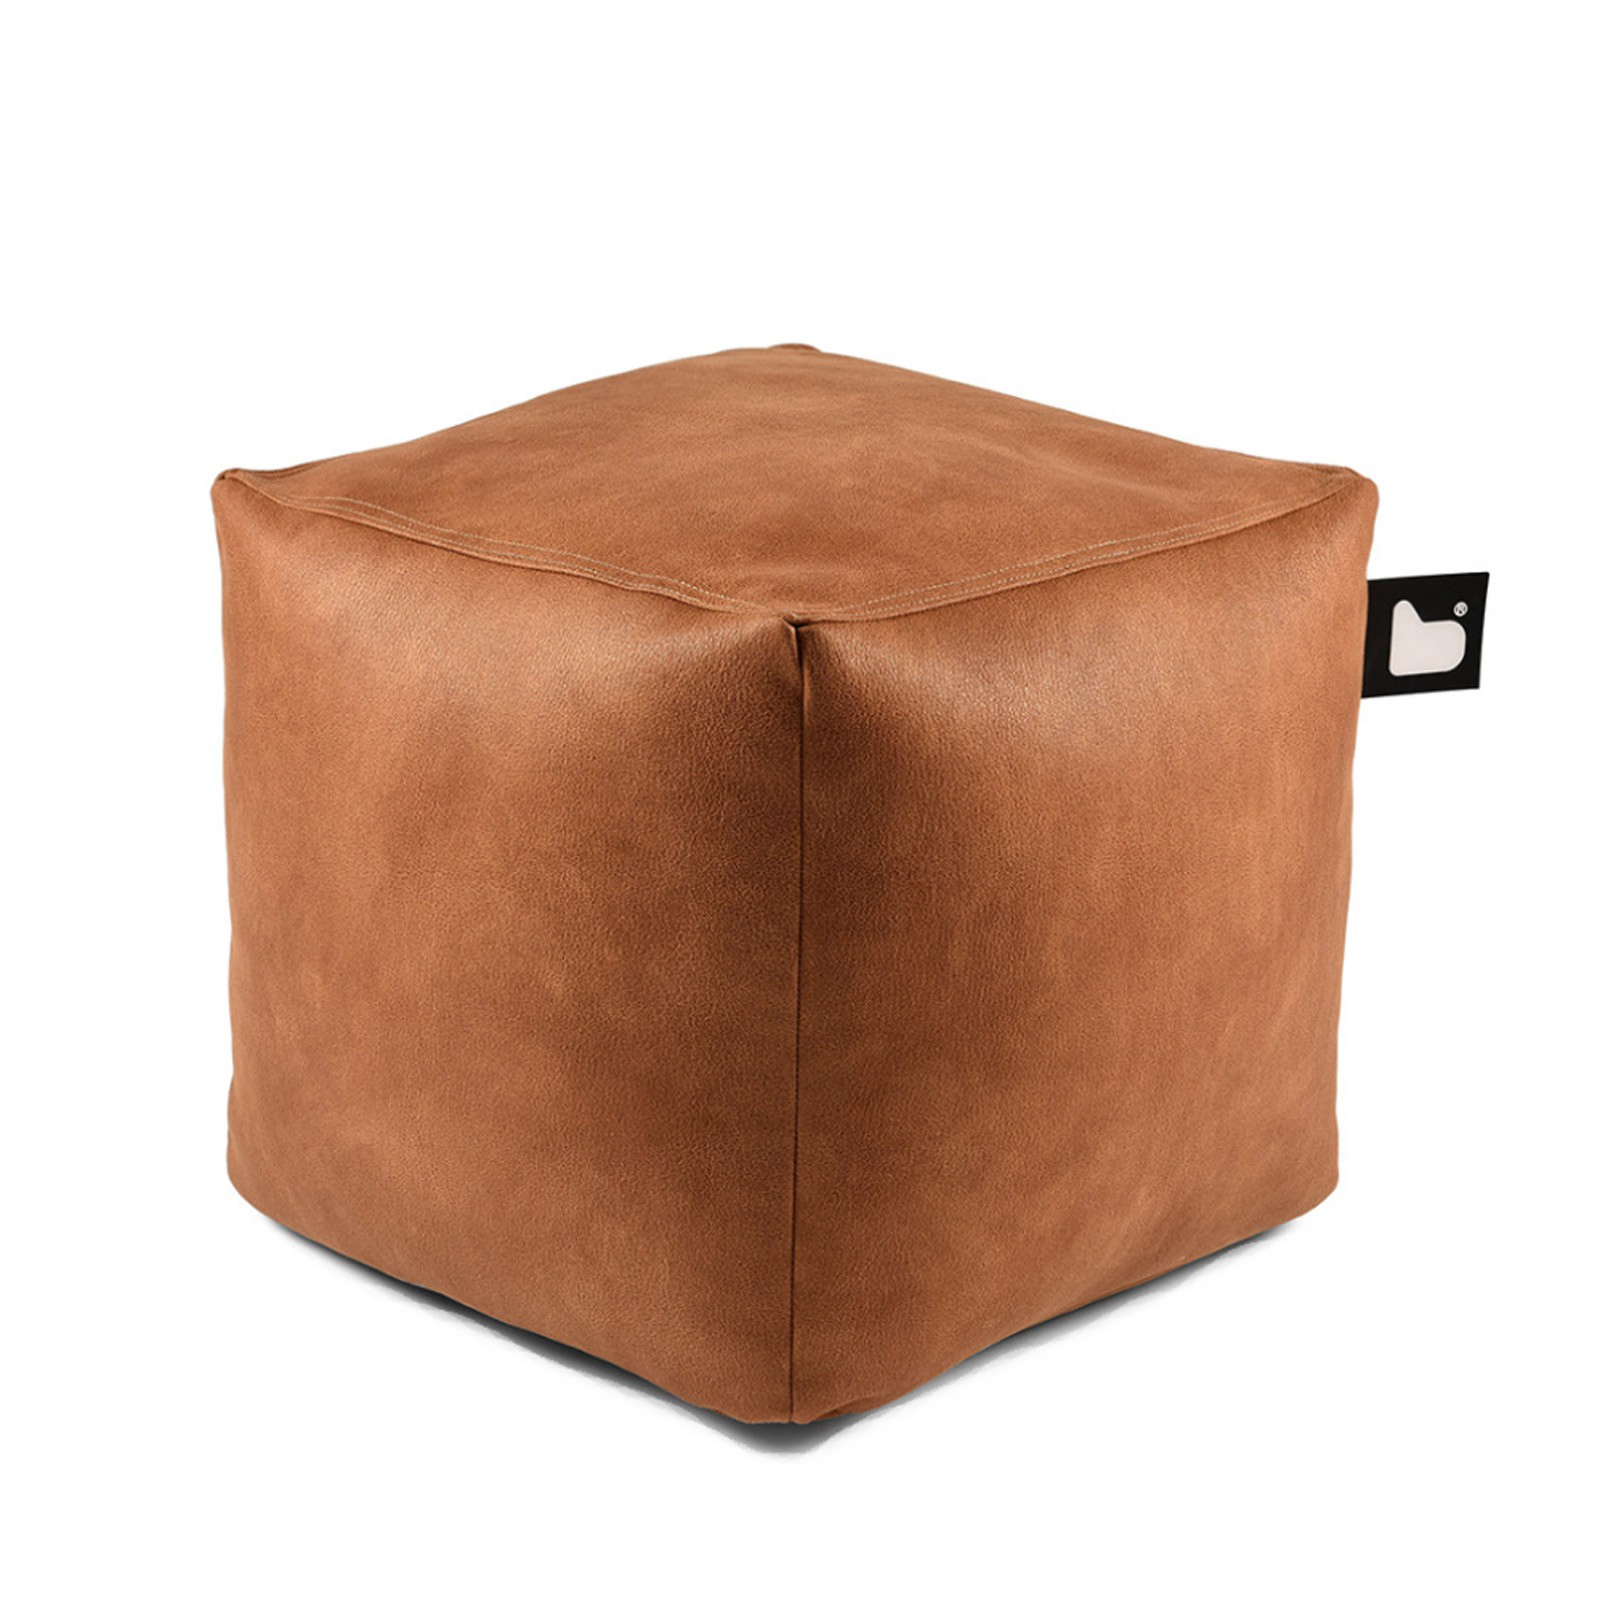 b-bag Extreme Lounging Sitzwürfel Box Lederoptik mighty-b, Farbe Tan